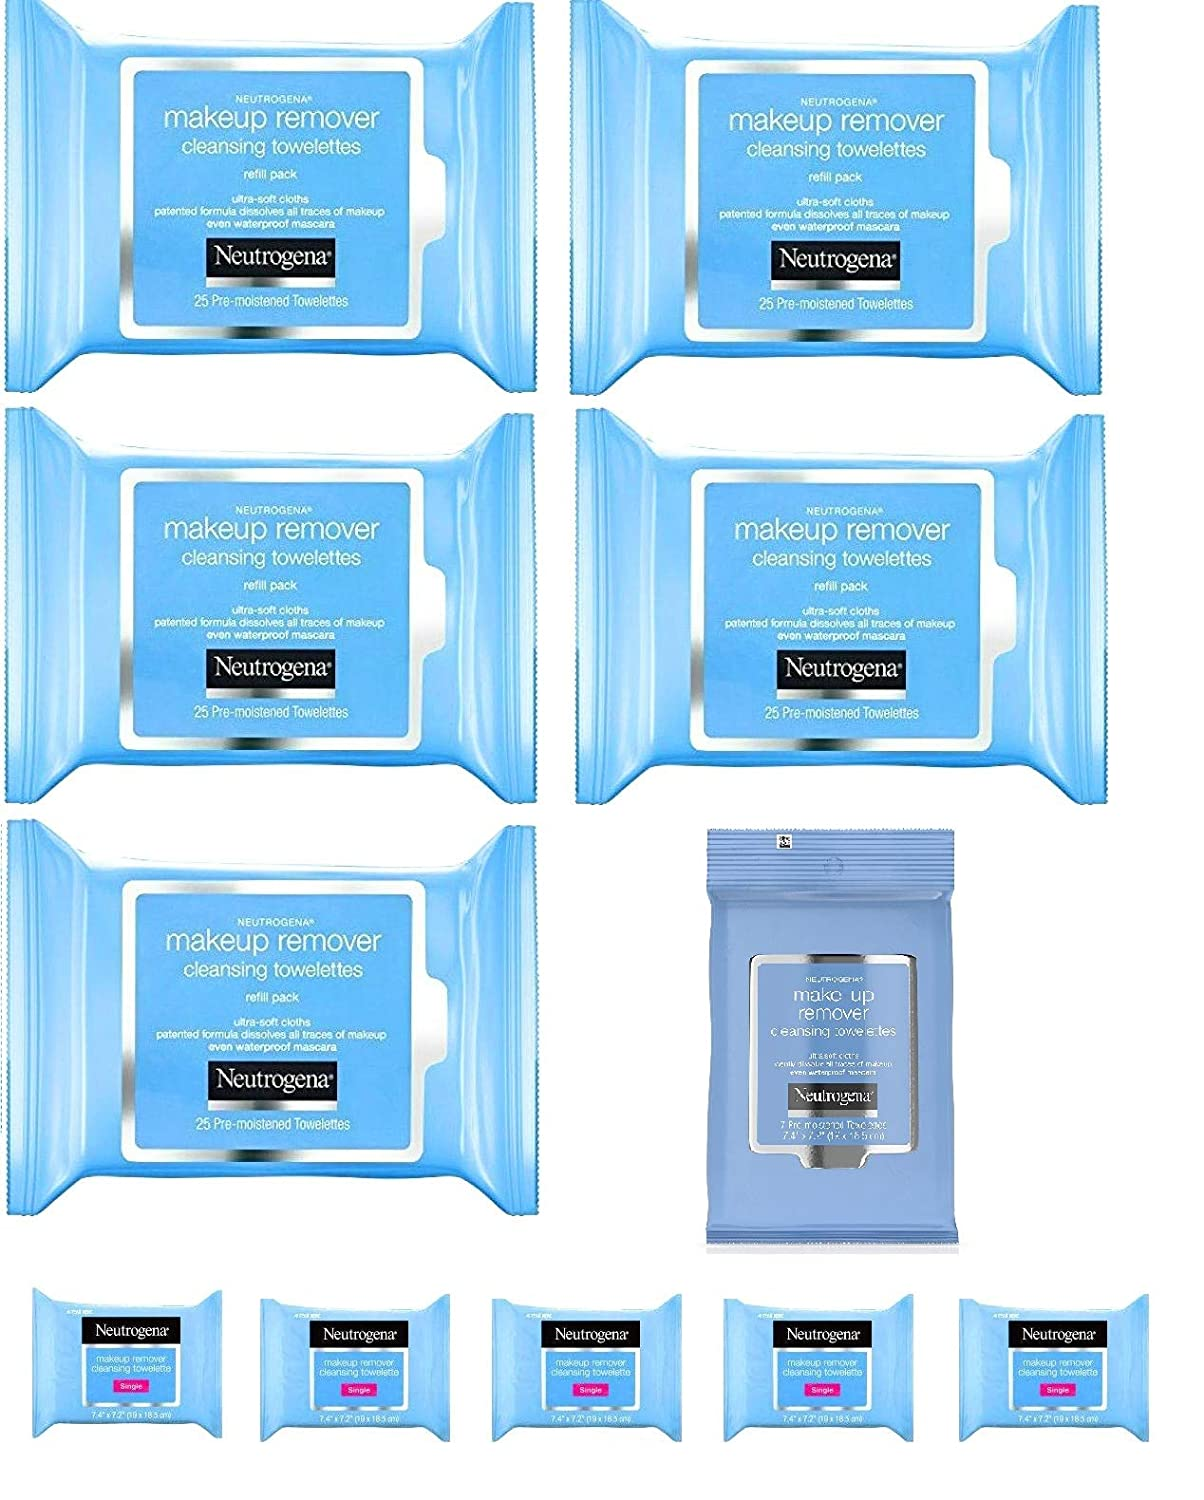 Neutrogena Makeup Remover Cleansing Towelettes, Daily Face Wipes to Remove Dirt, Oil, Makeup & Waterproof Mascara, 132 Count Plus 5 Bonus Single Pouches